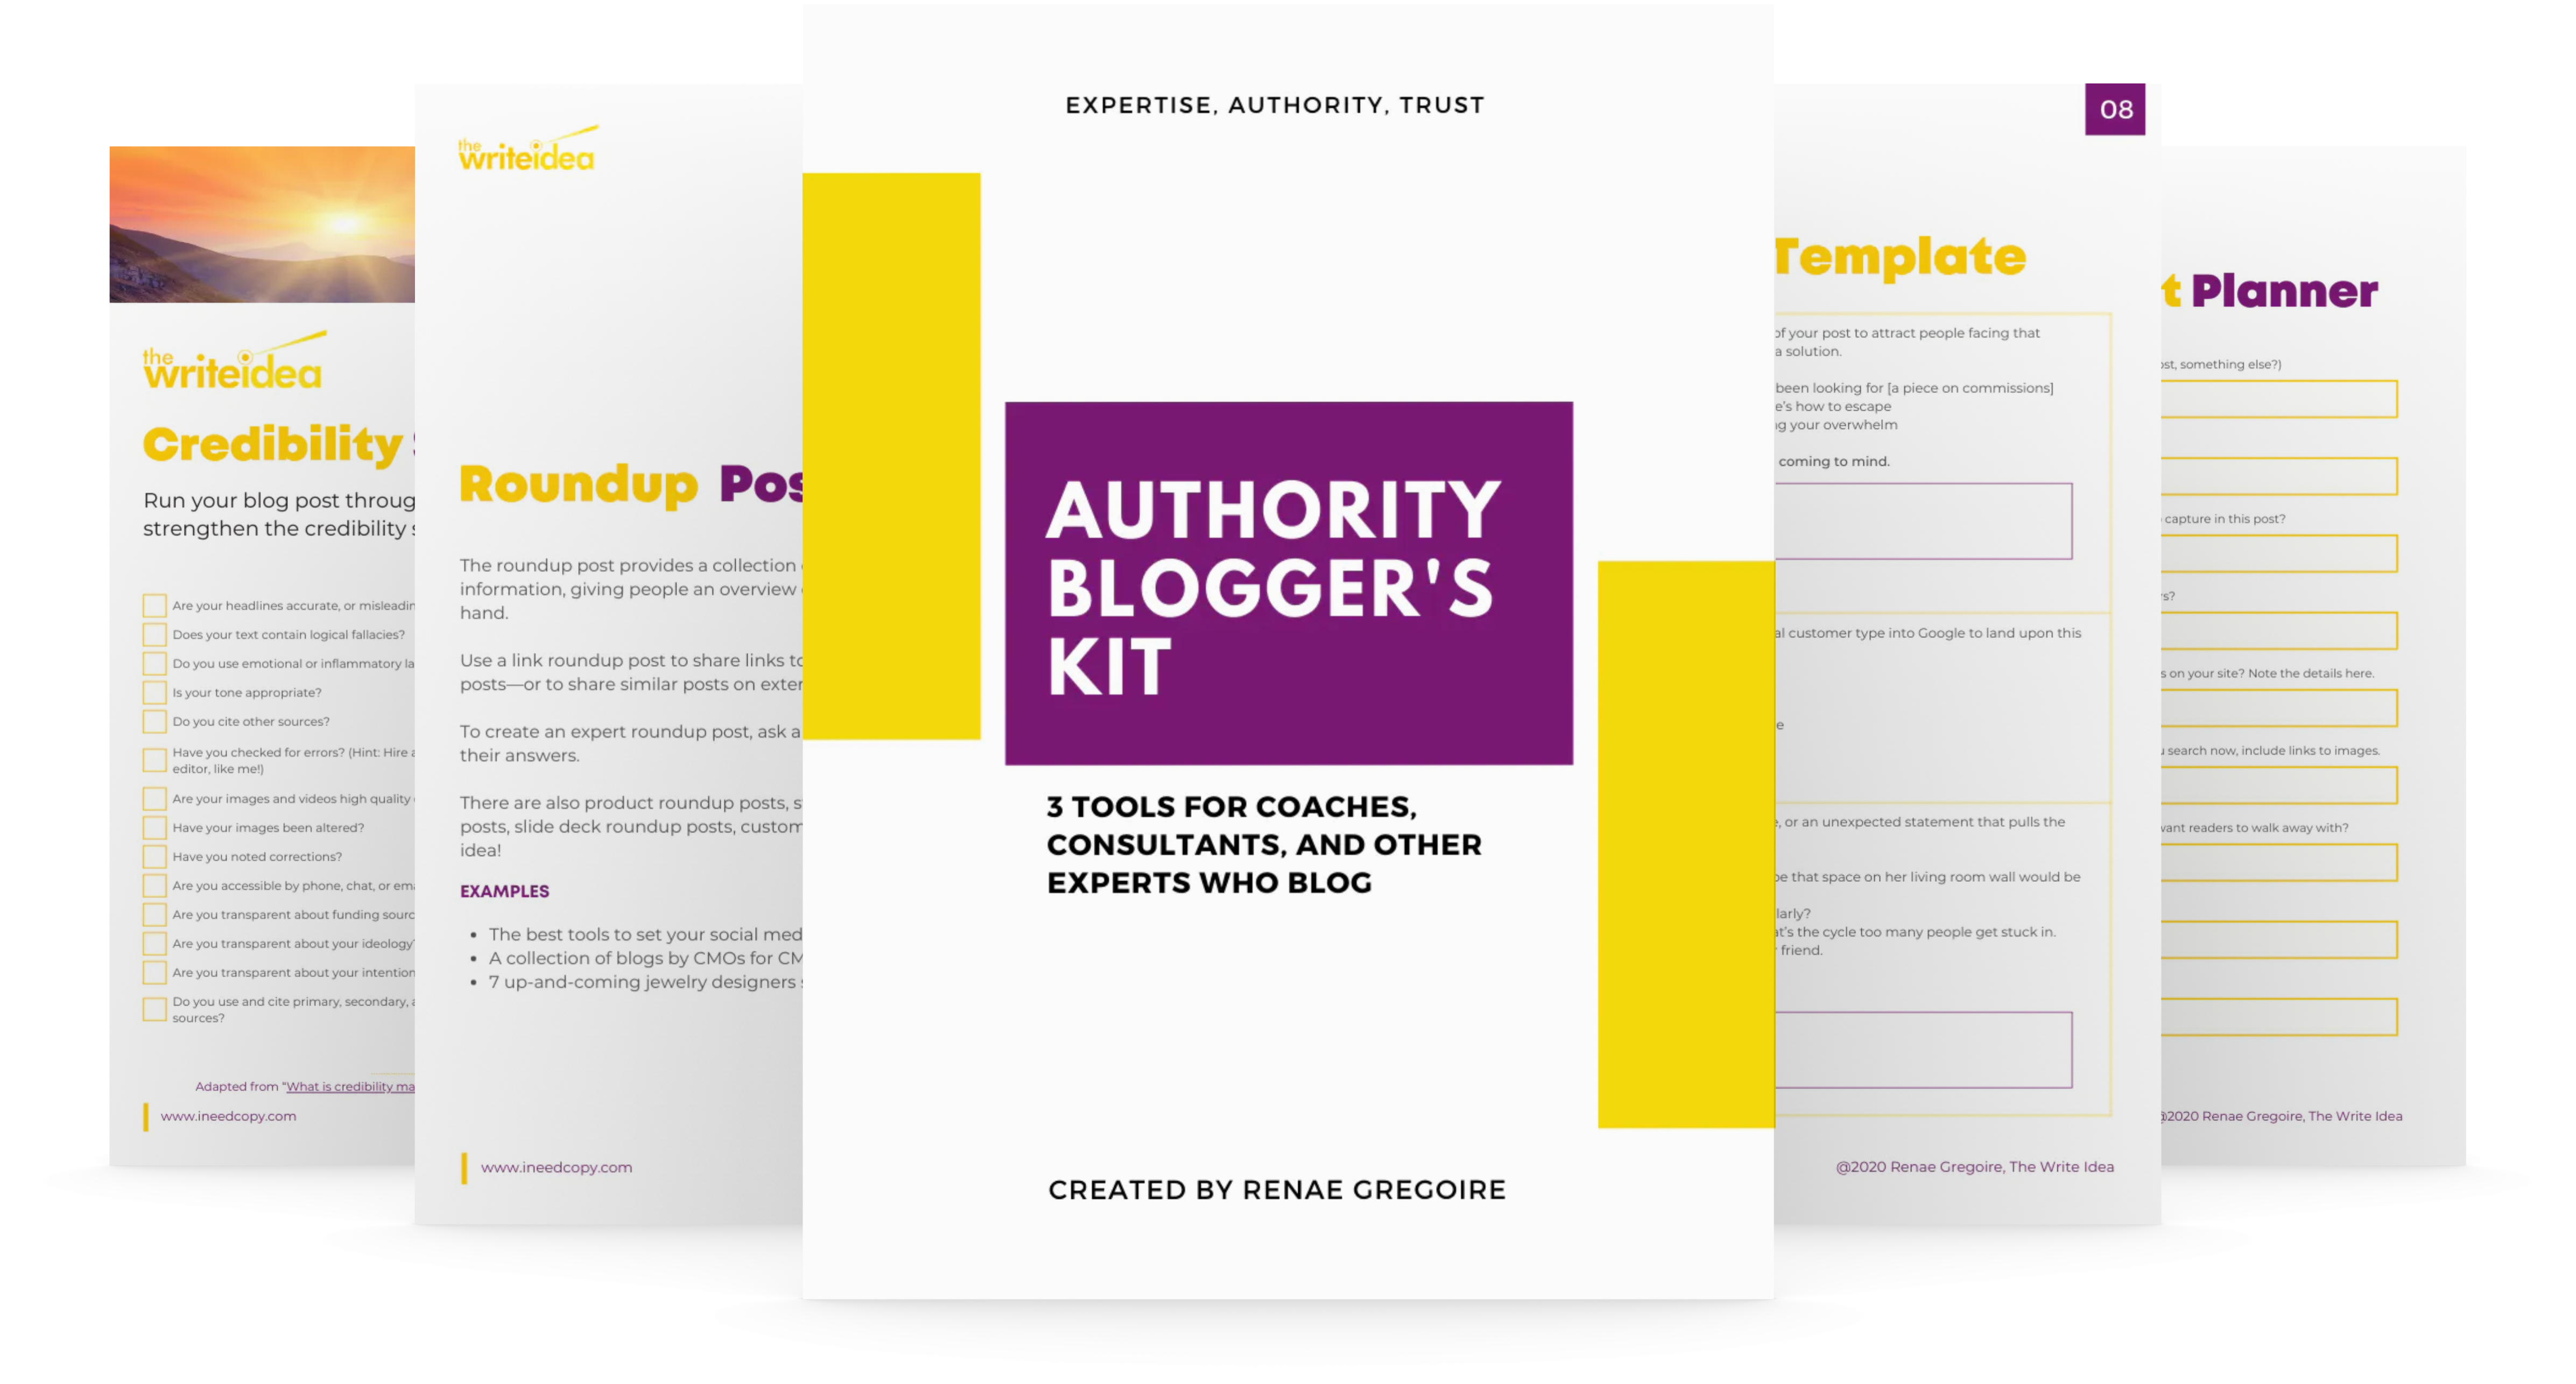 The Authority Blogger's Kit